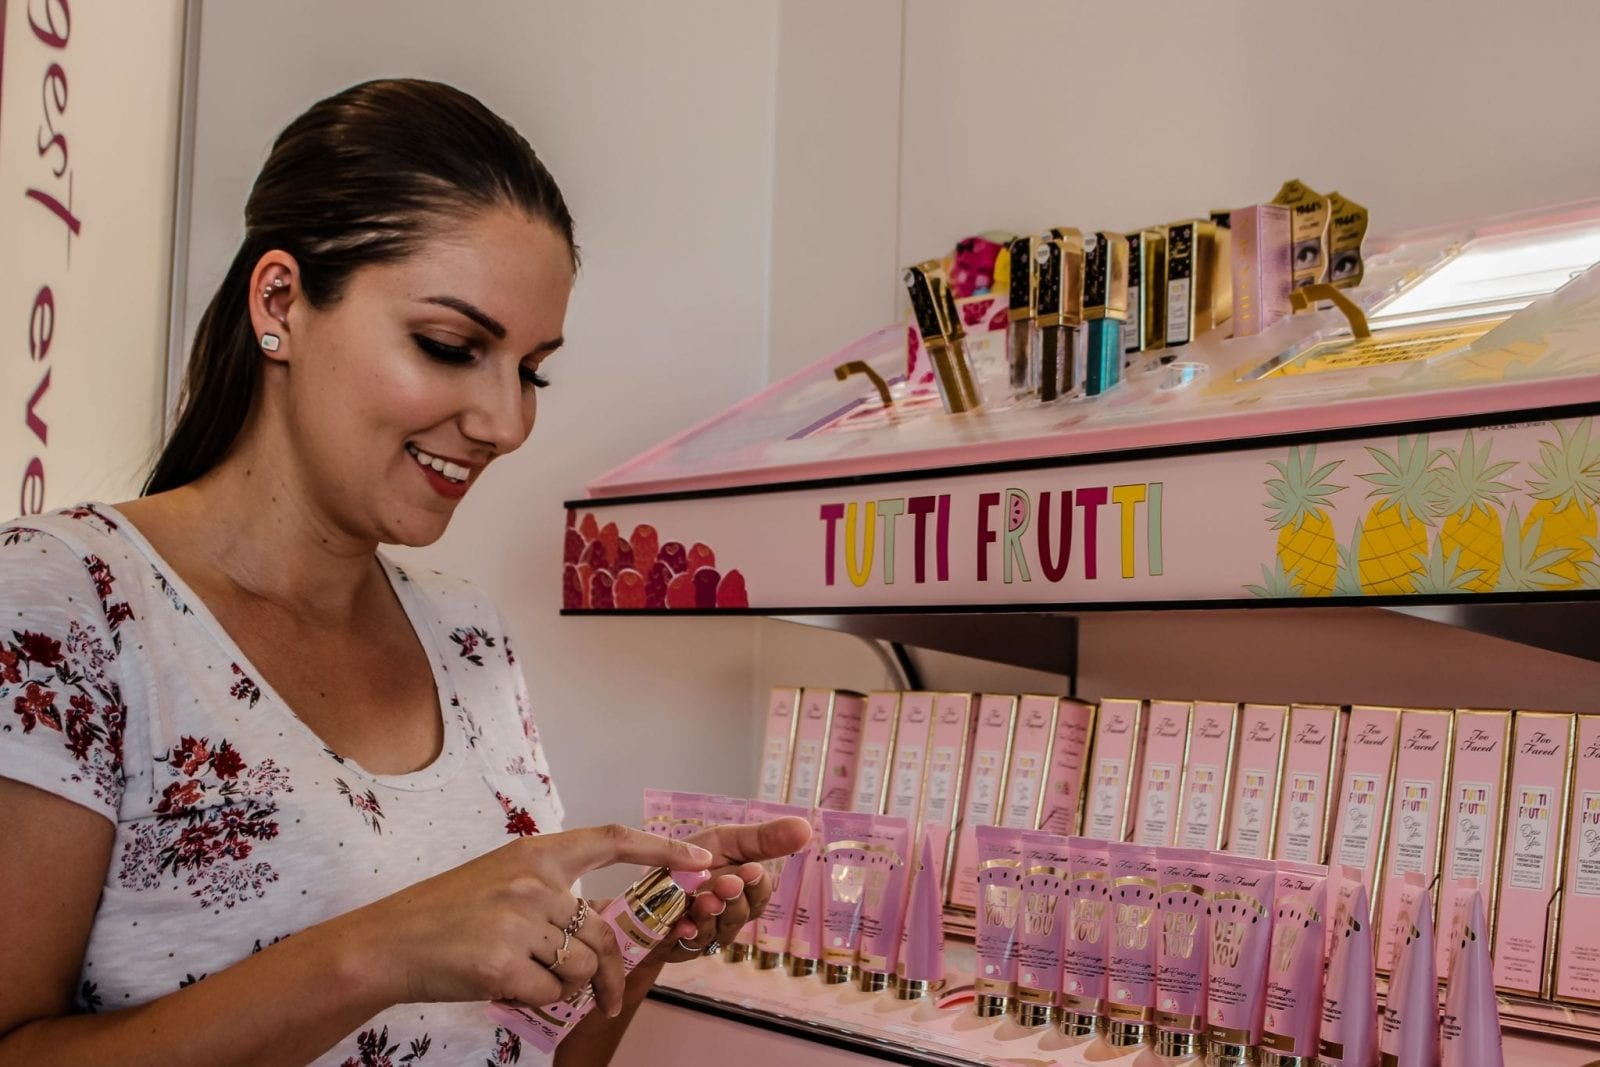 This is a close up of me testing the new Tutti Frutti Collection from Too Faced at Ulta Beauty.